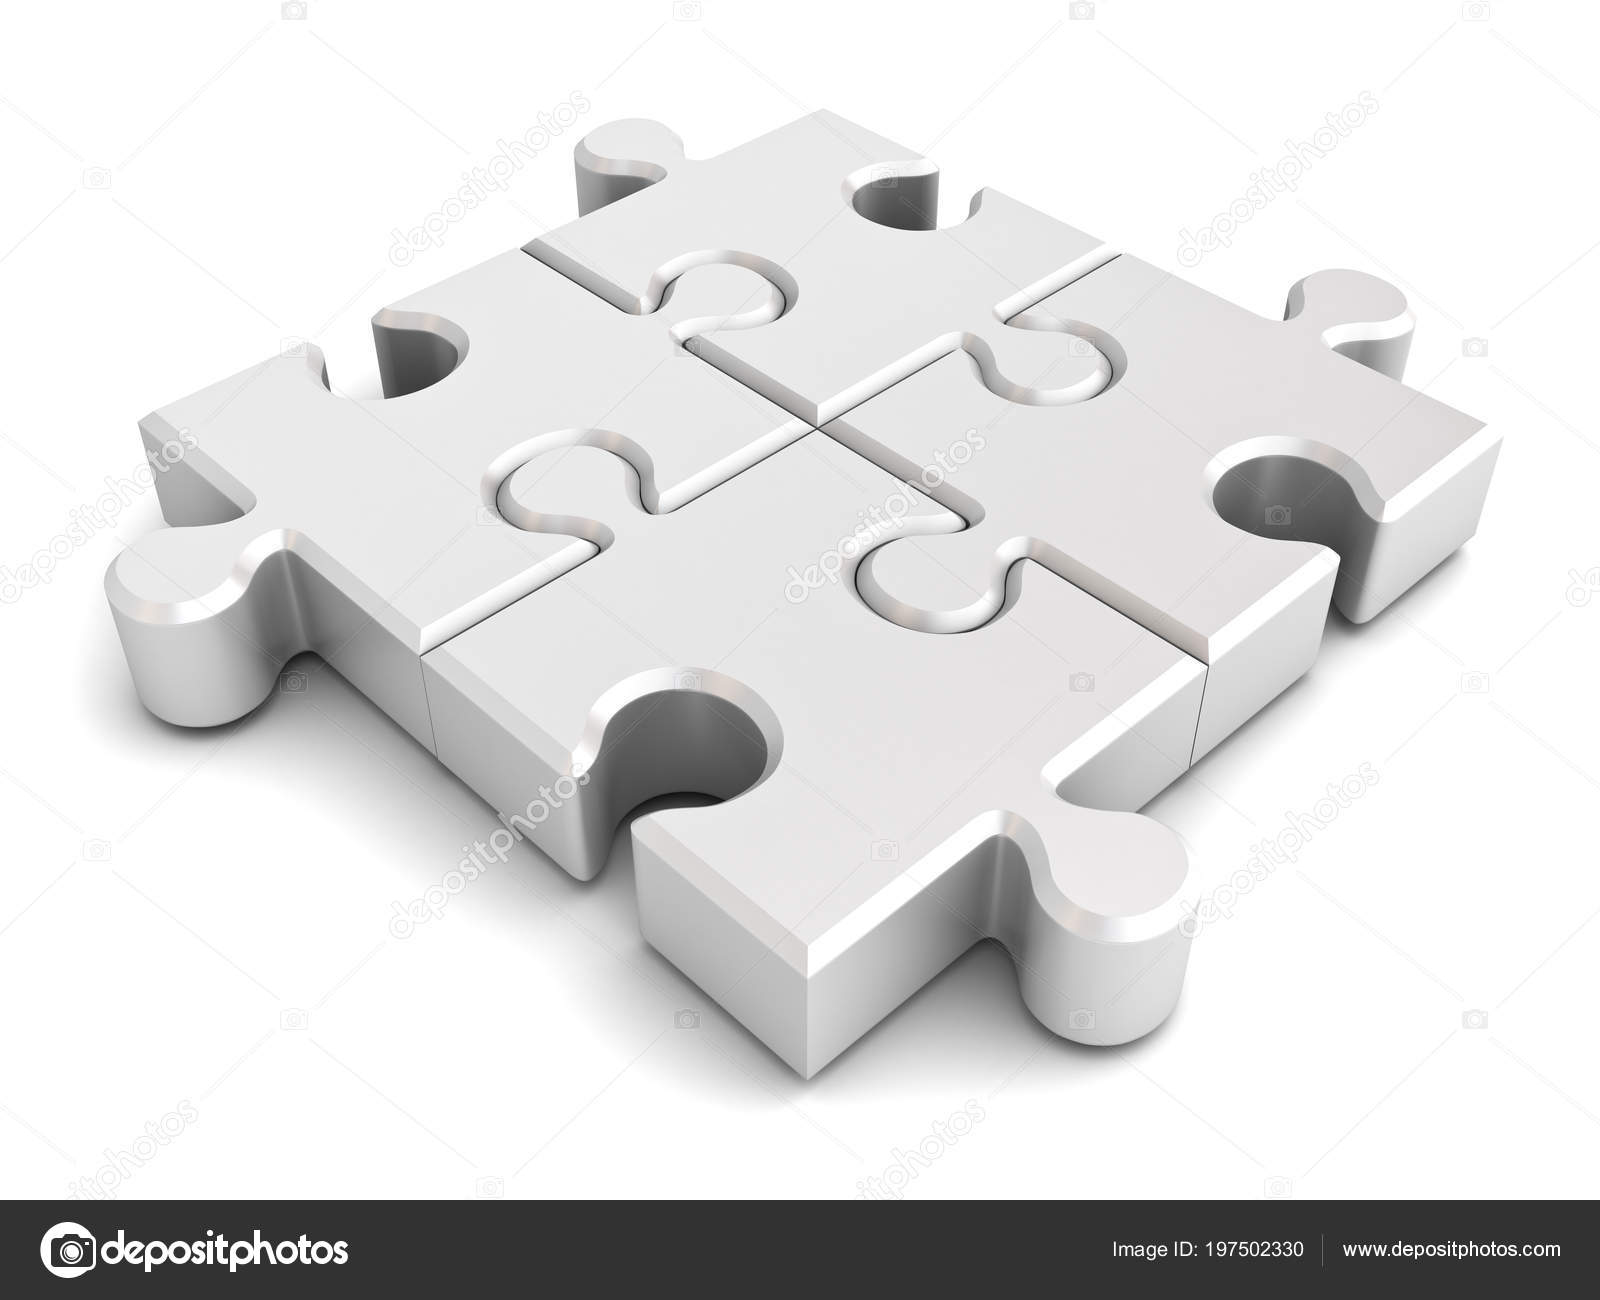 Four White Jigsaw Puzzle Pieces Isolated White Background Shadow Rendering Stock Photo Image By 3dconceptsman 197502330